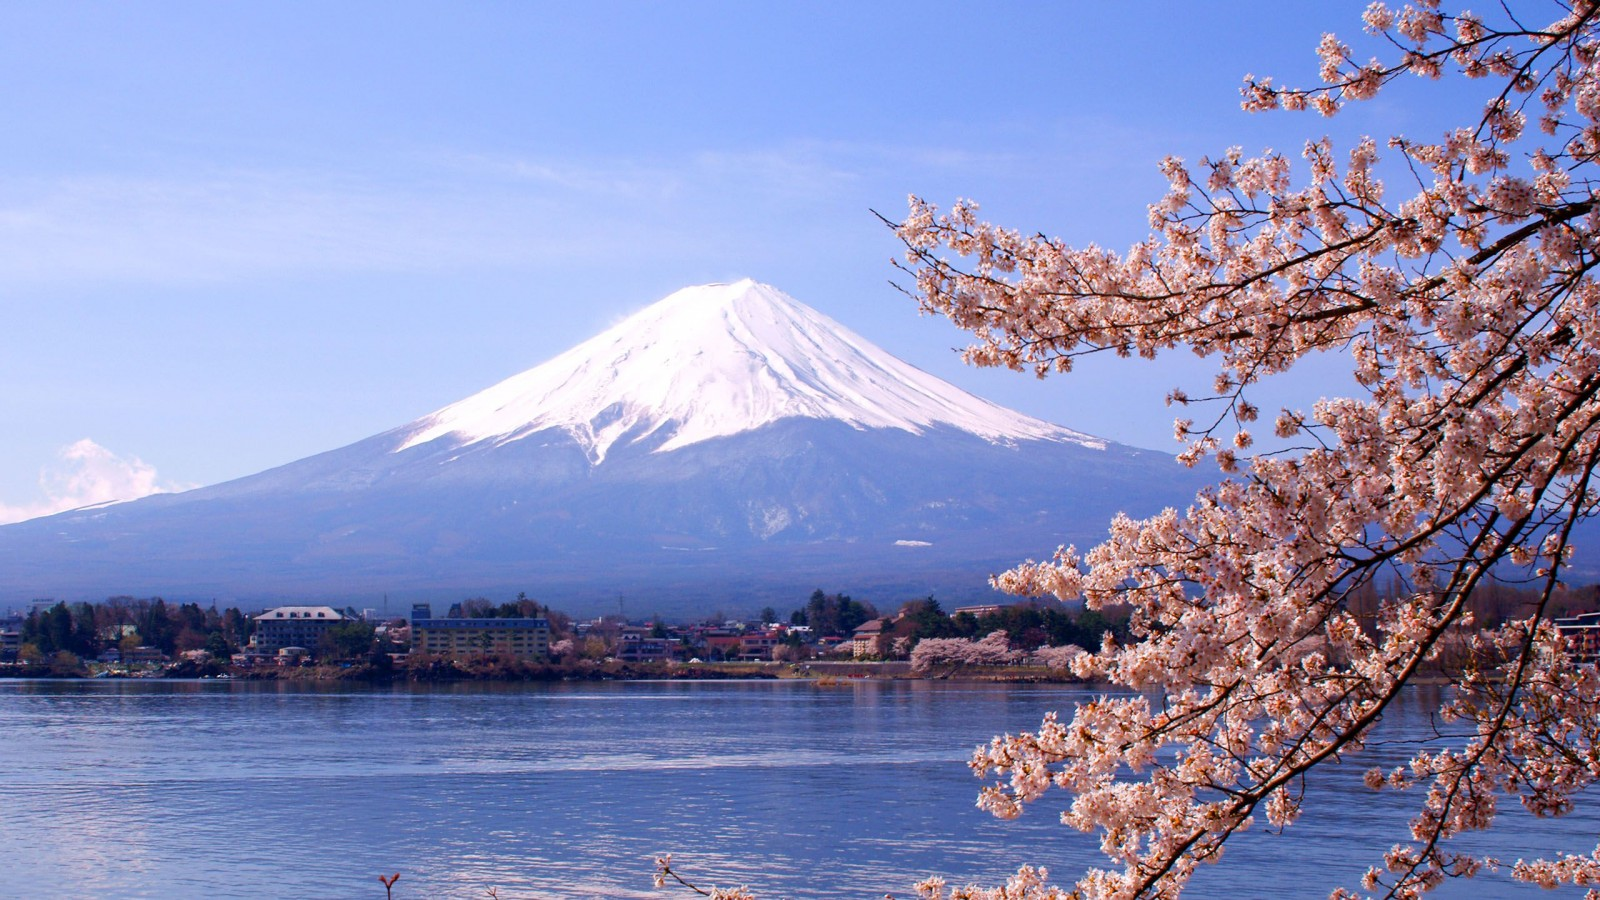 Download Japanese Landscape pictures in high definition or widescreen 1600x900